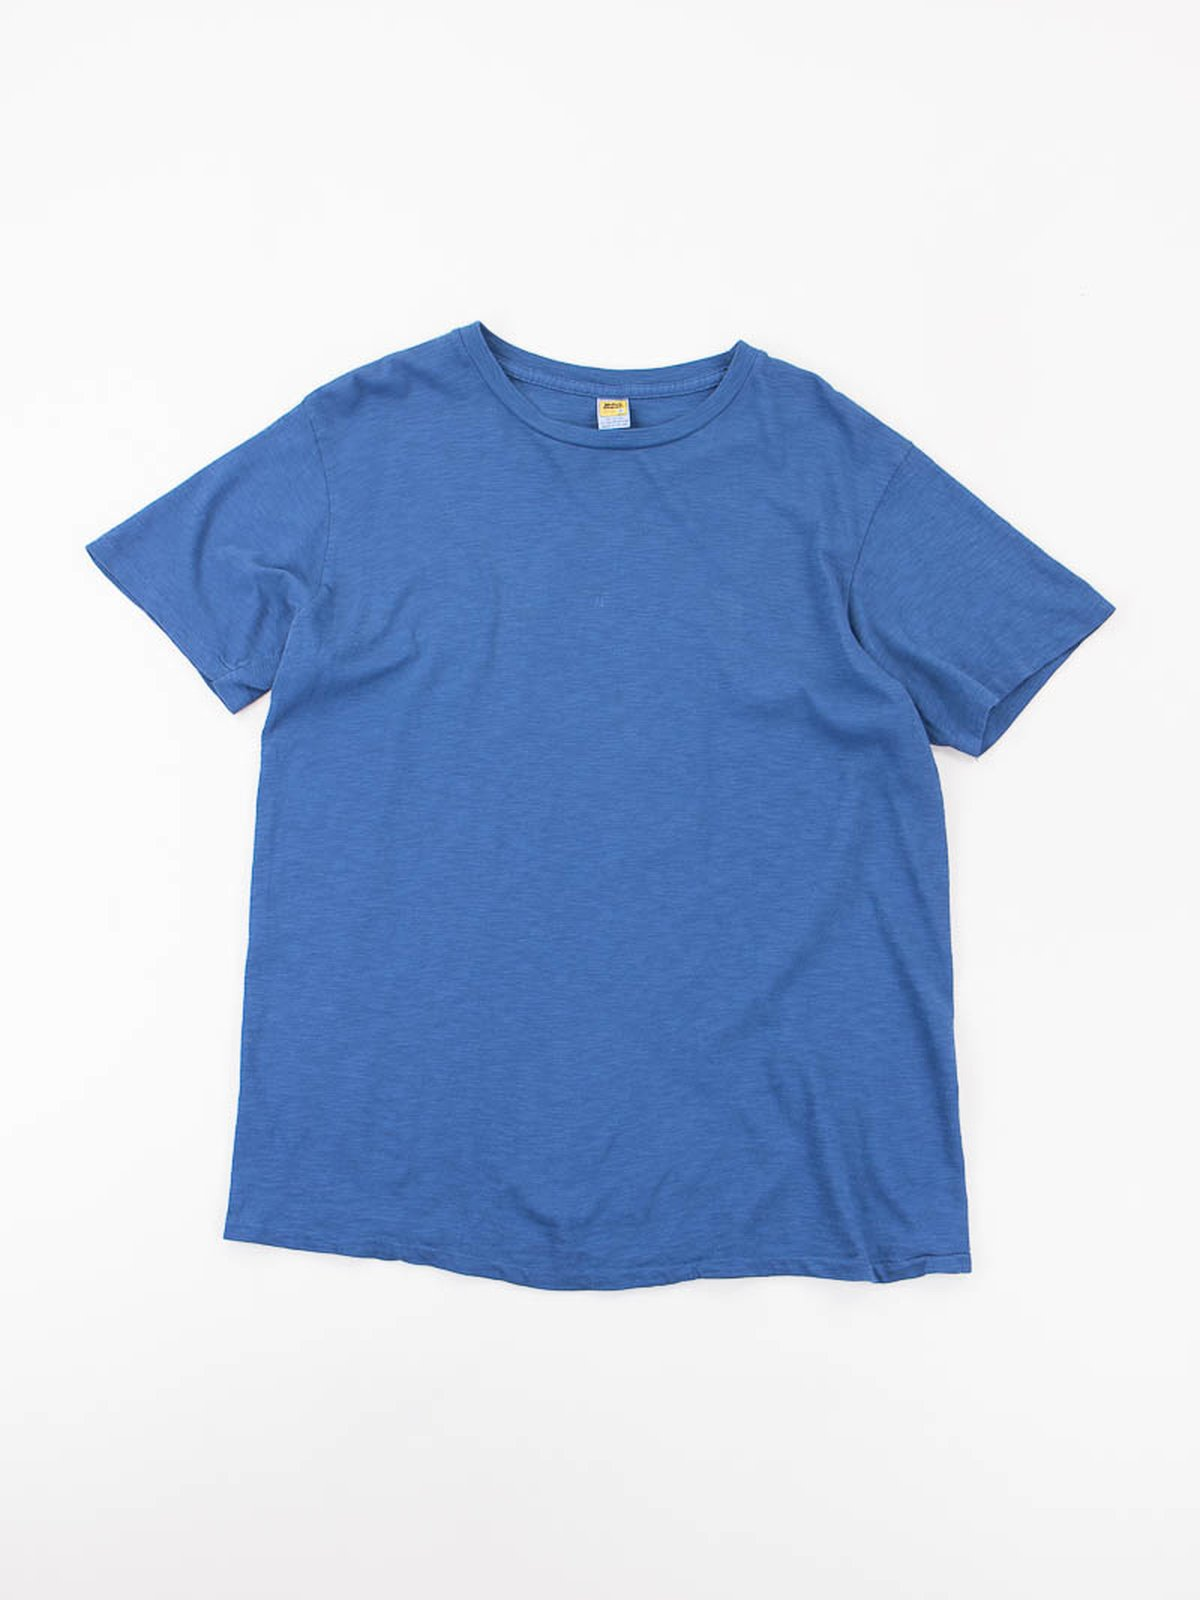 Blue Rolled Regular Tee - Image 2